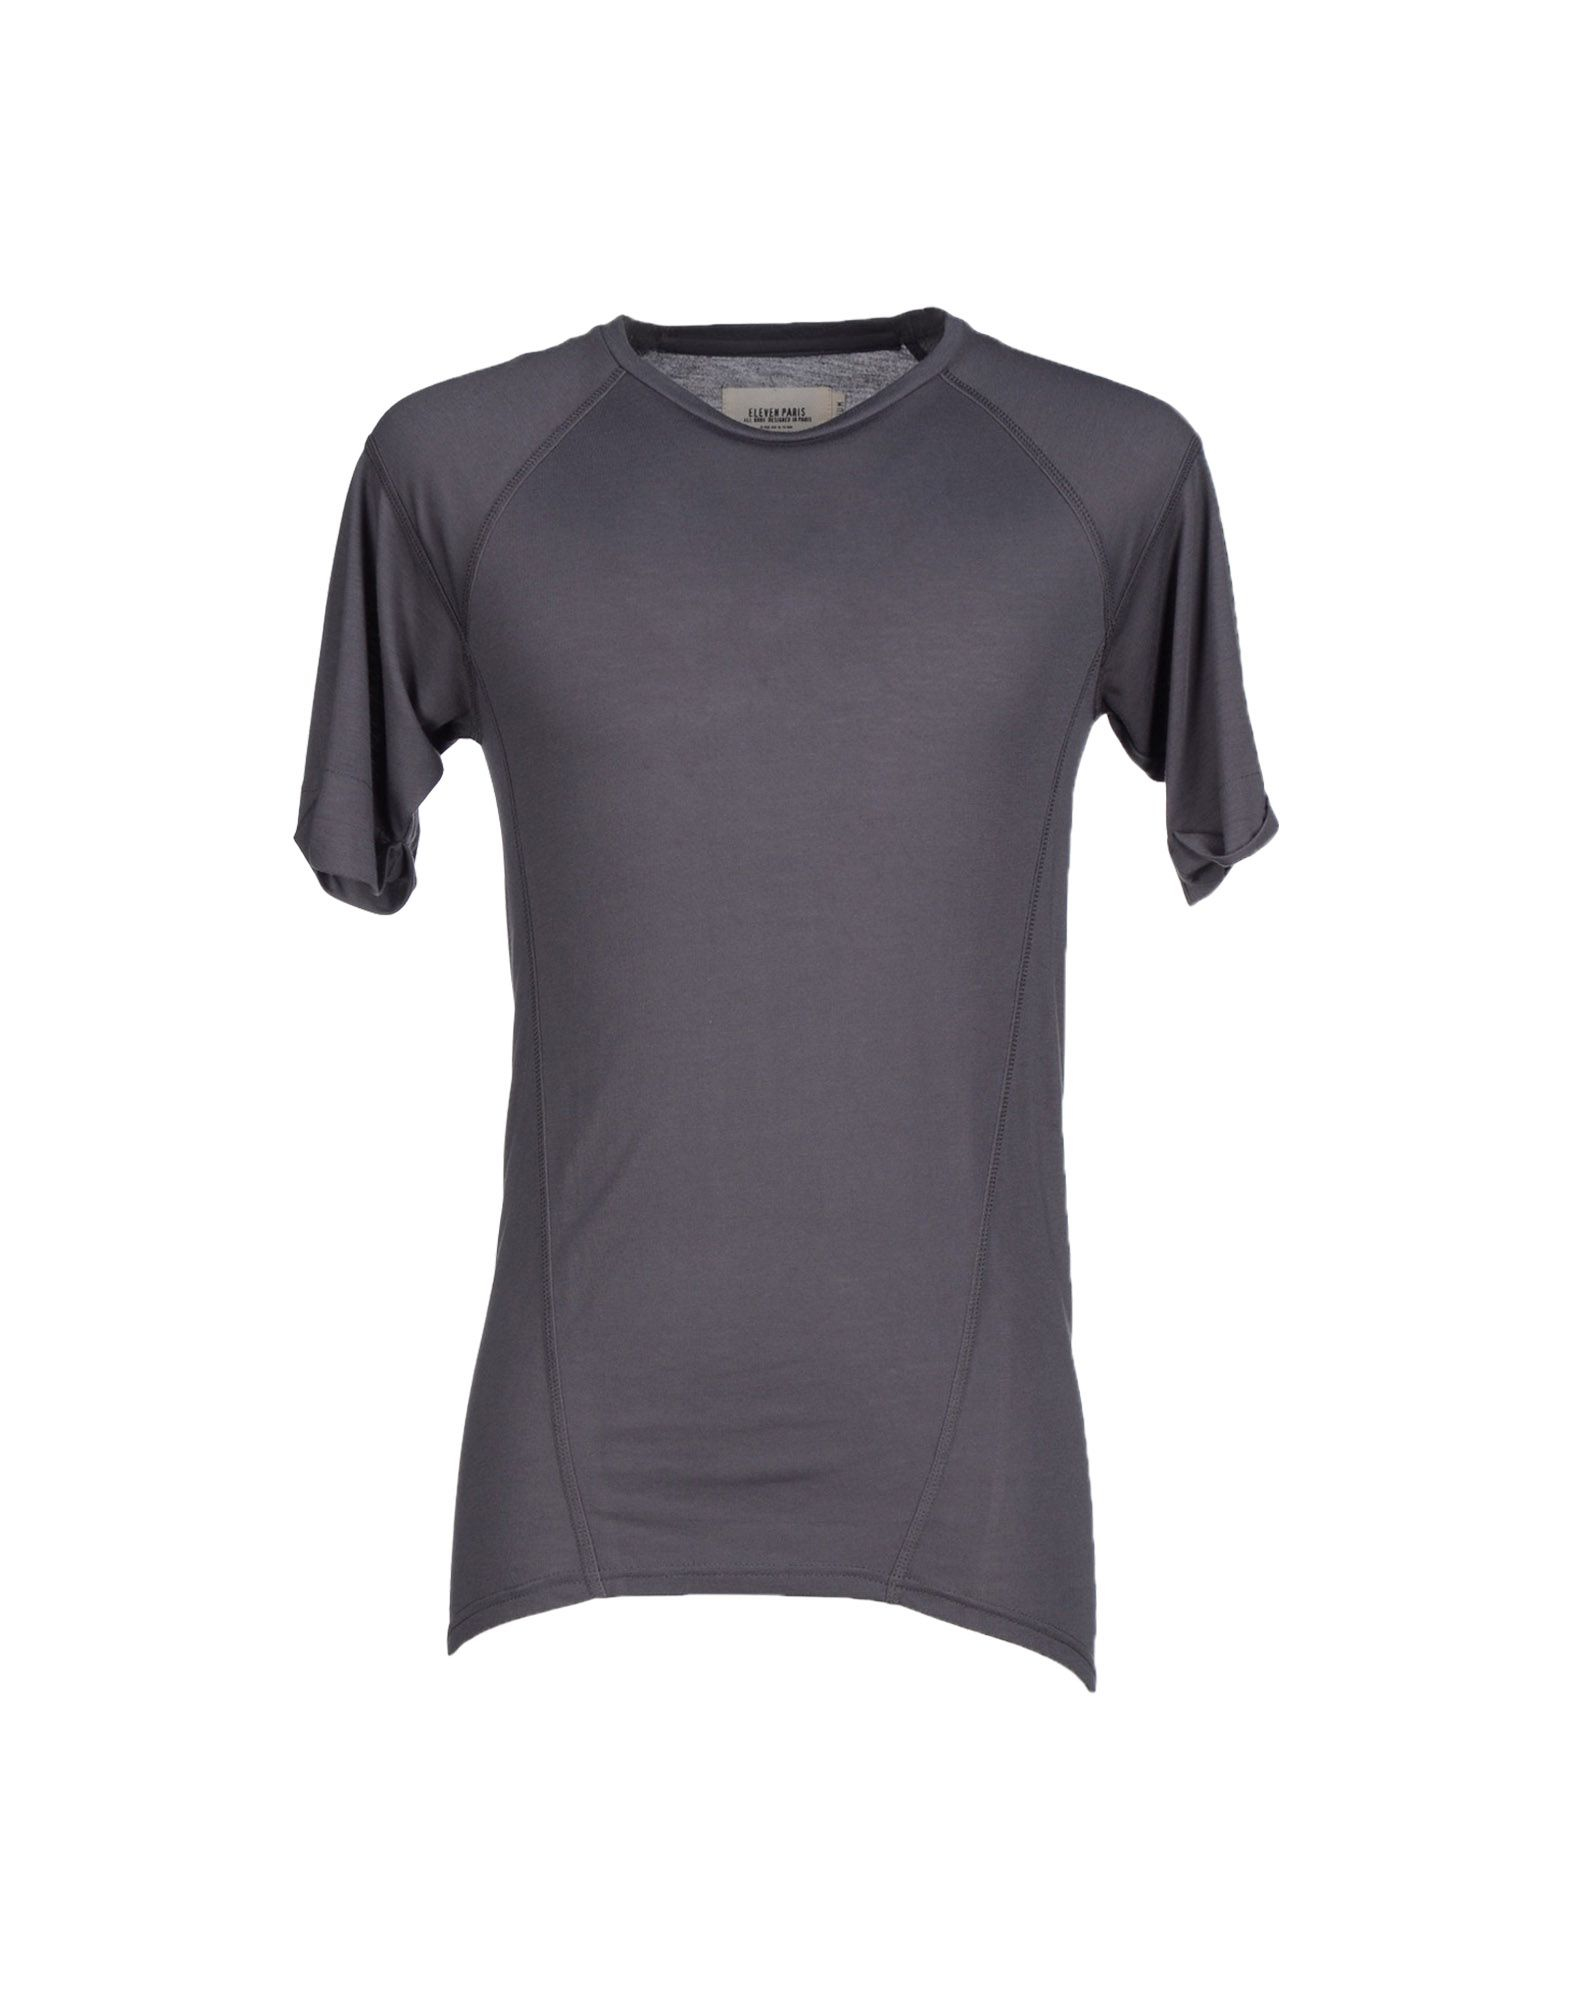 eleven paris t shirt in gray for men lyst. Black Bedroom Furniture Sets. Home Design Ideas